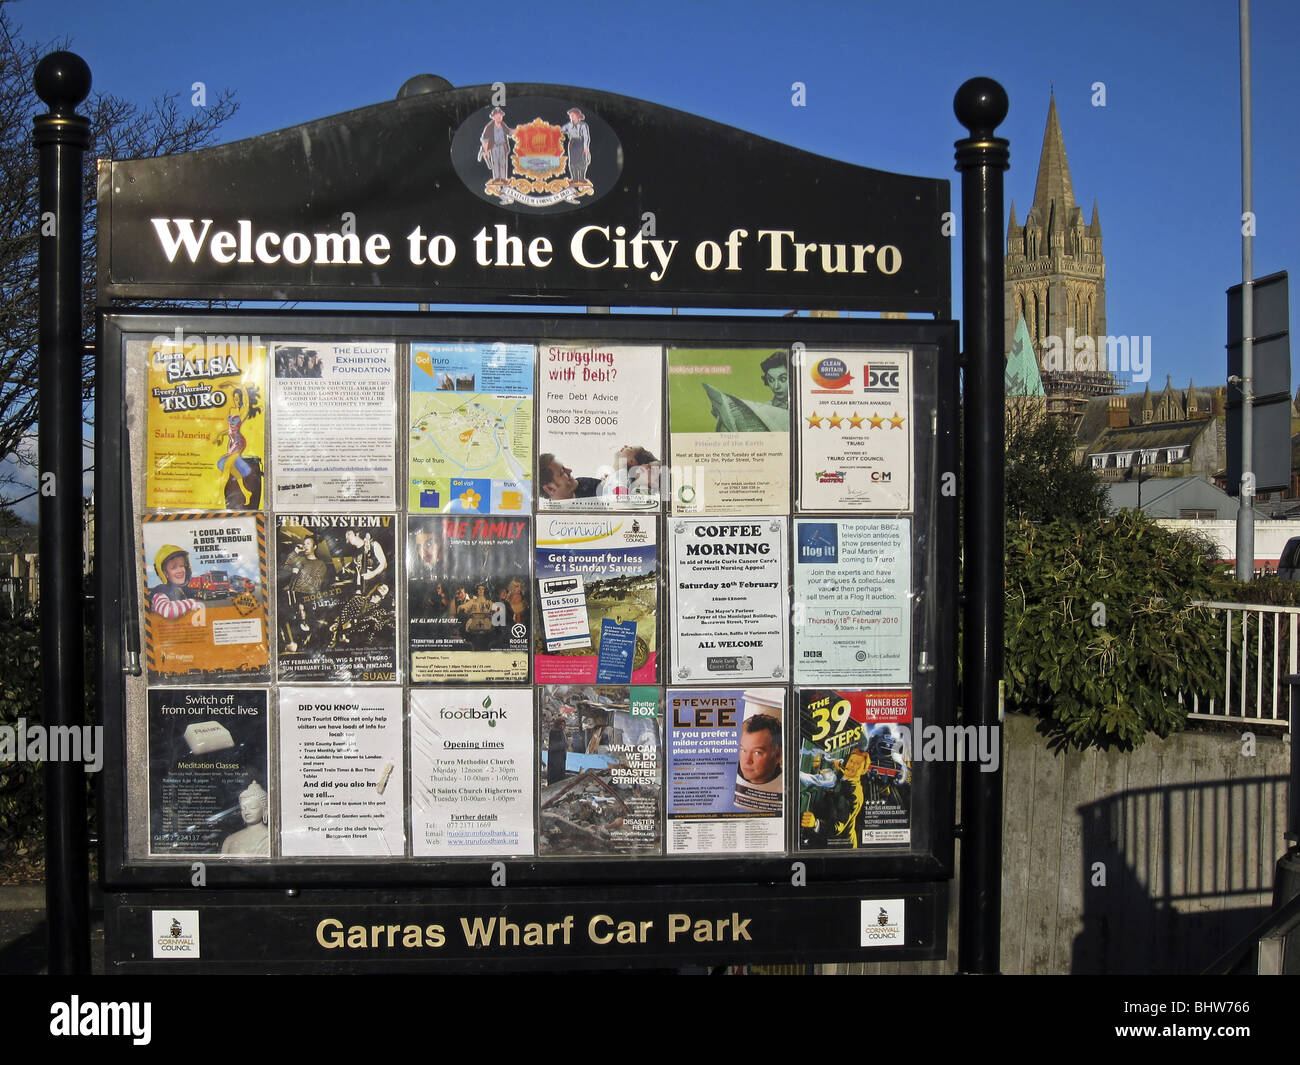 welcome sign to truro,cornwall,uk - Stock Image